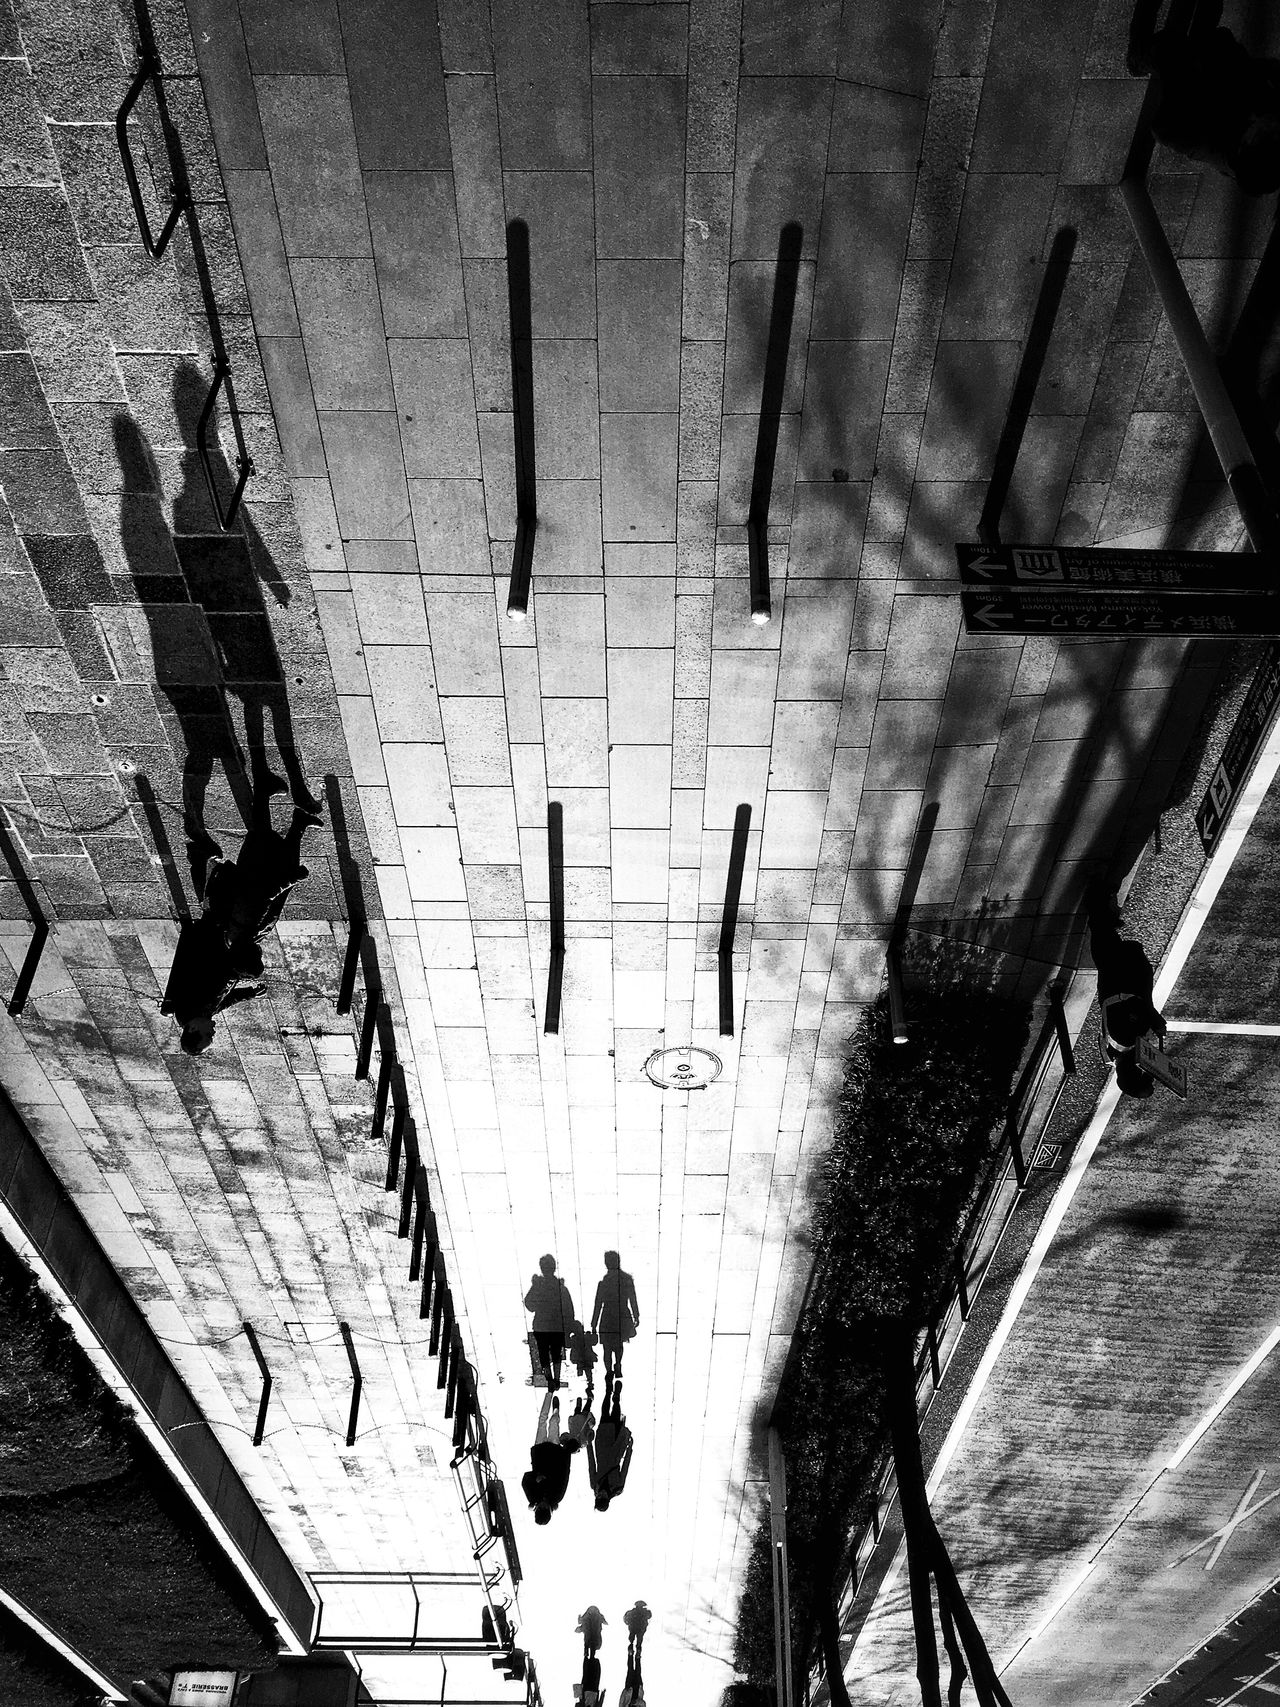 Light and shadow time| The City Light EyeEmNewHere Light And Shadow Shadow People People Watching People Photography People And Places Family Monochrome Blackandwhite Black And White City City Life Cityscape Cityscapes Street Streetphotography Street Photography Streetphoto_bw Street Art Art Shadows & Lights Shadows Black & White